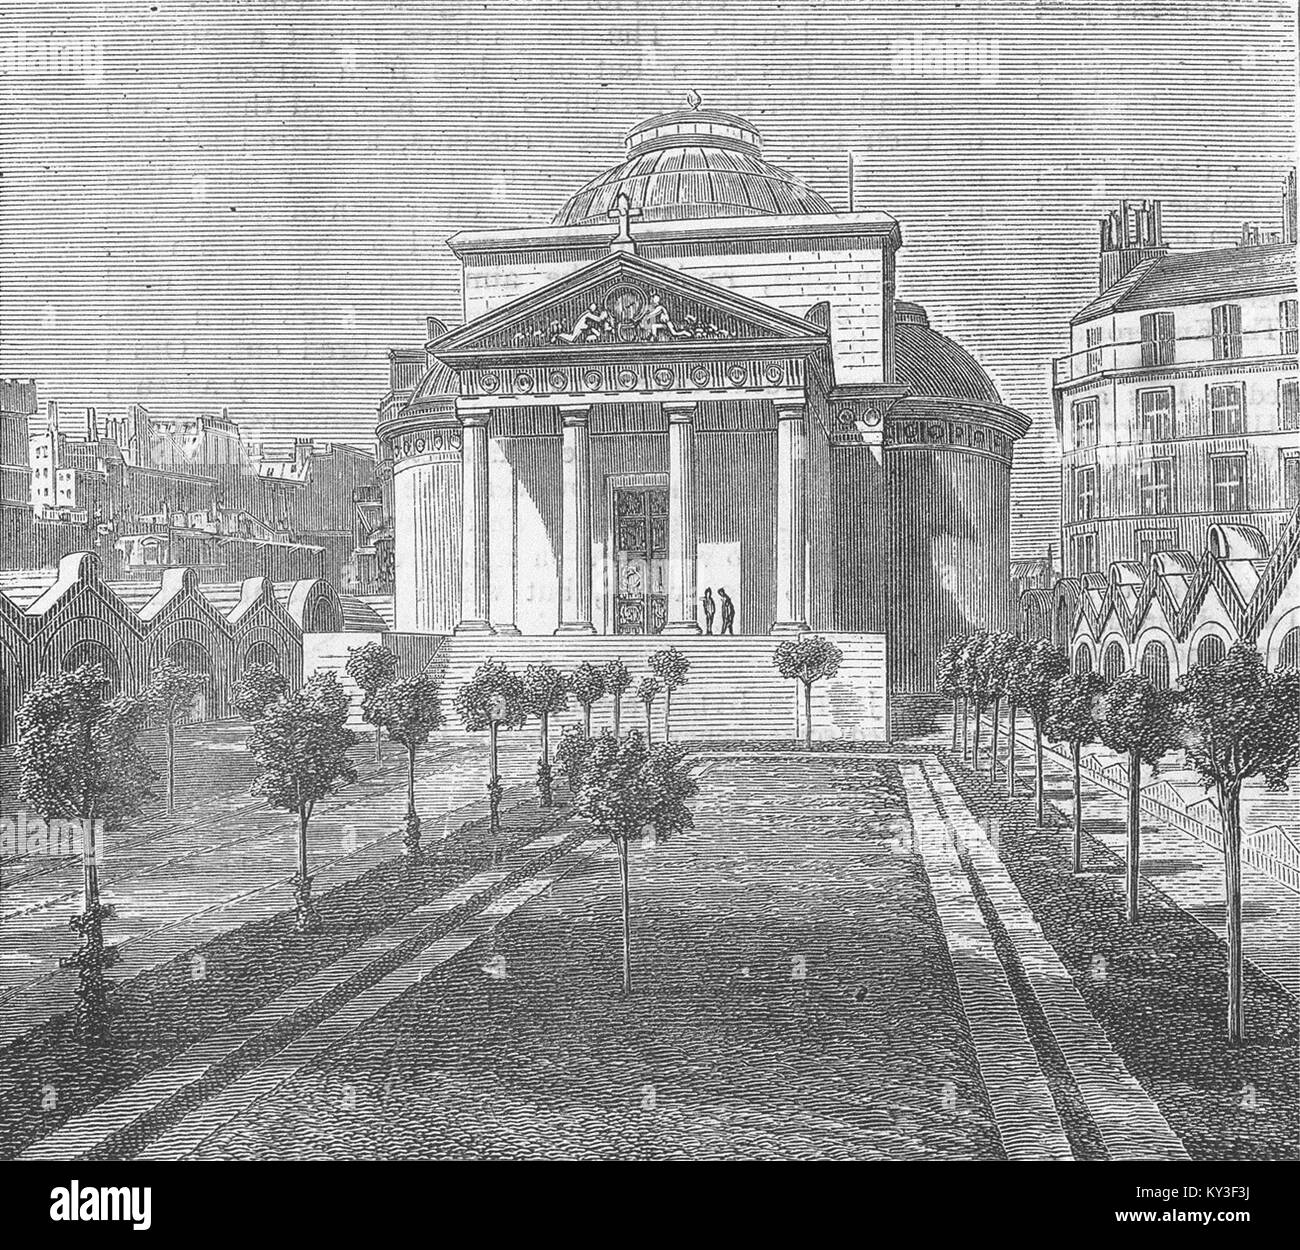 PARIS The Chapelle Expiatoire, destroyed by the communists 1871. The Graphic - Stock Image